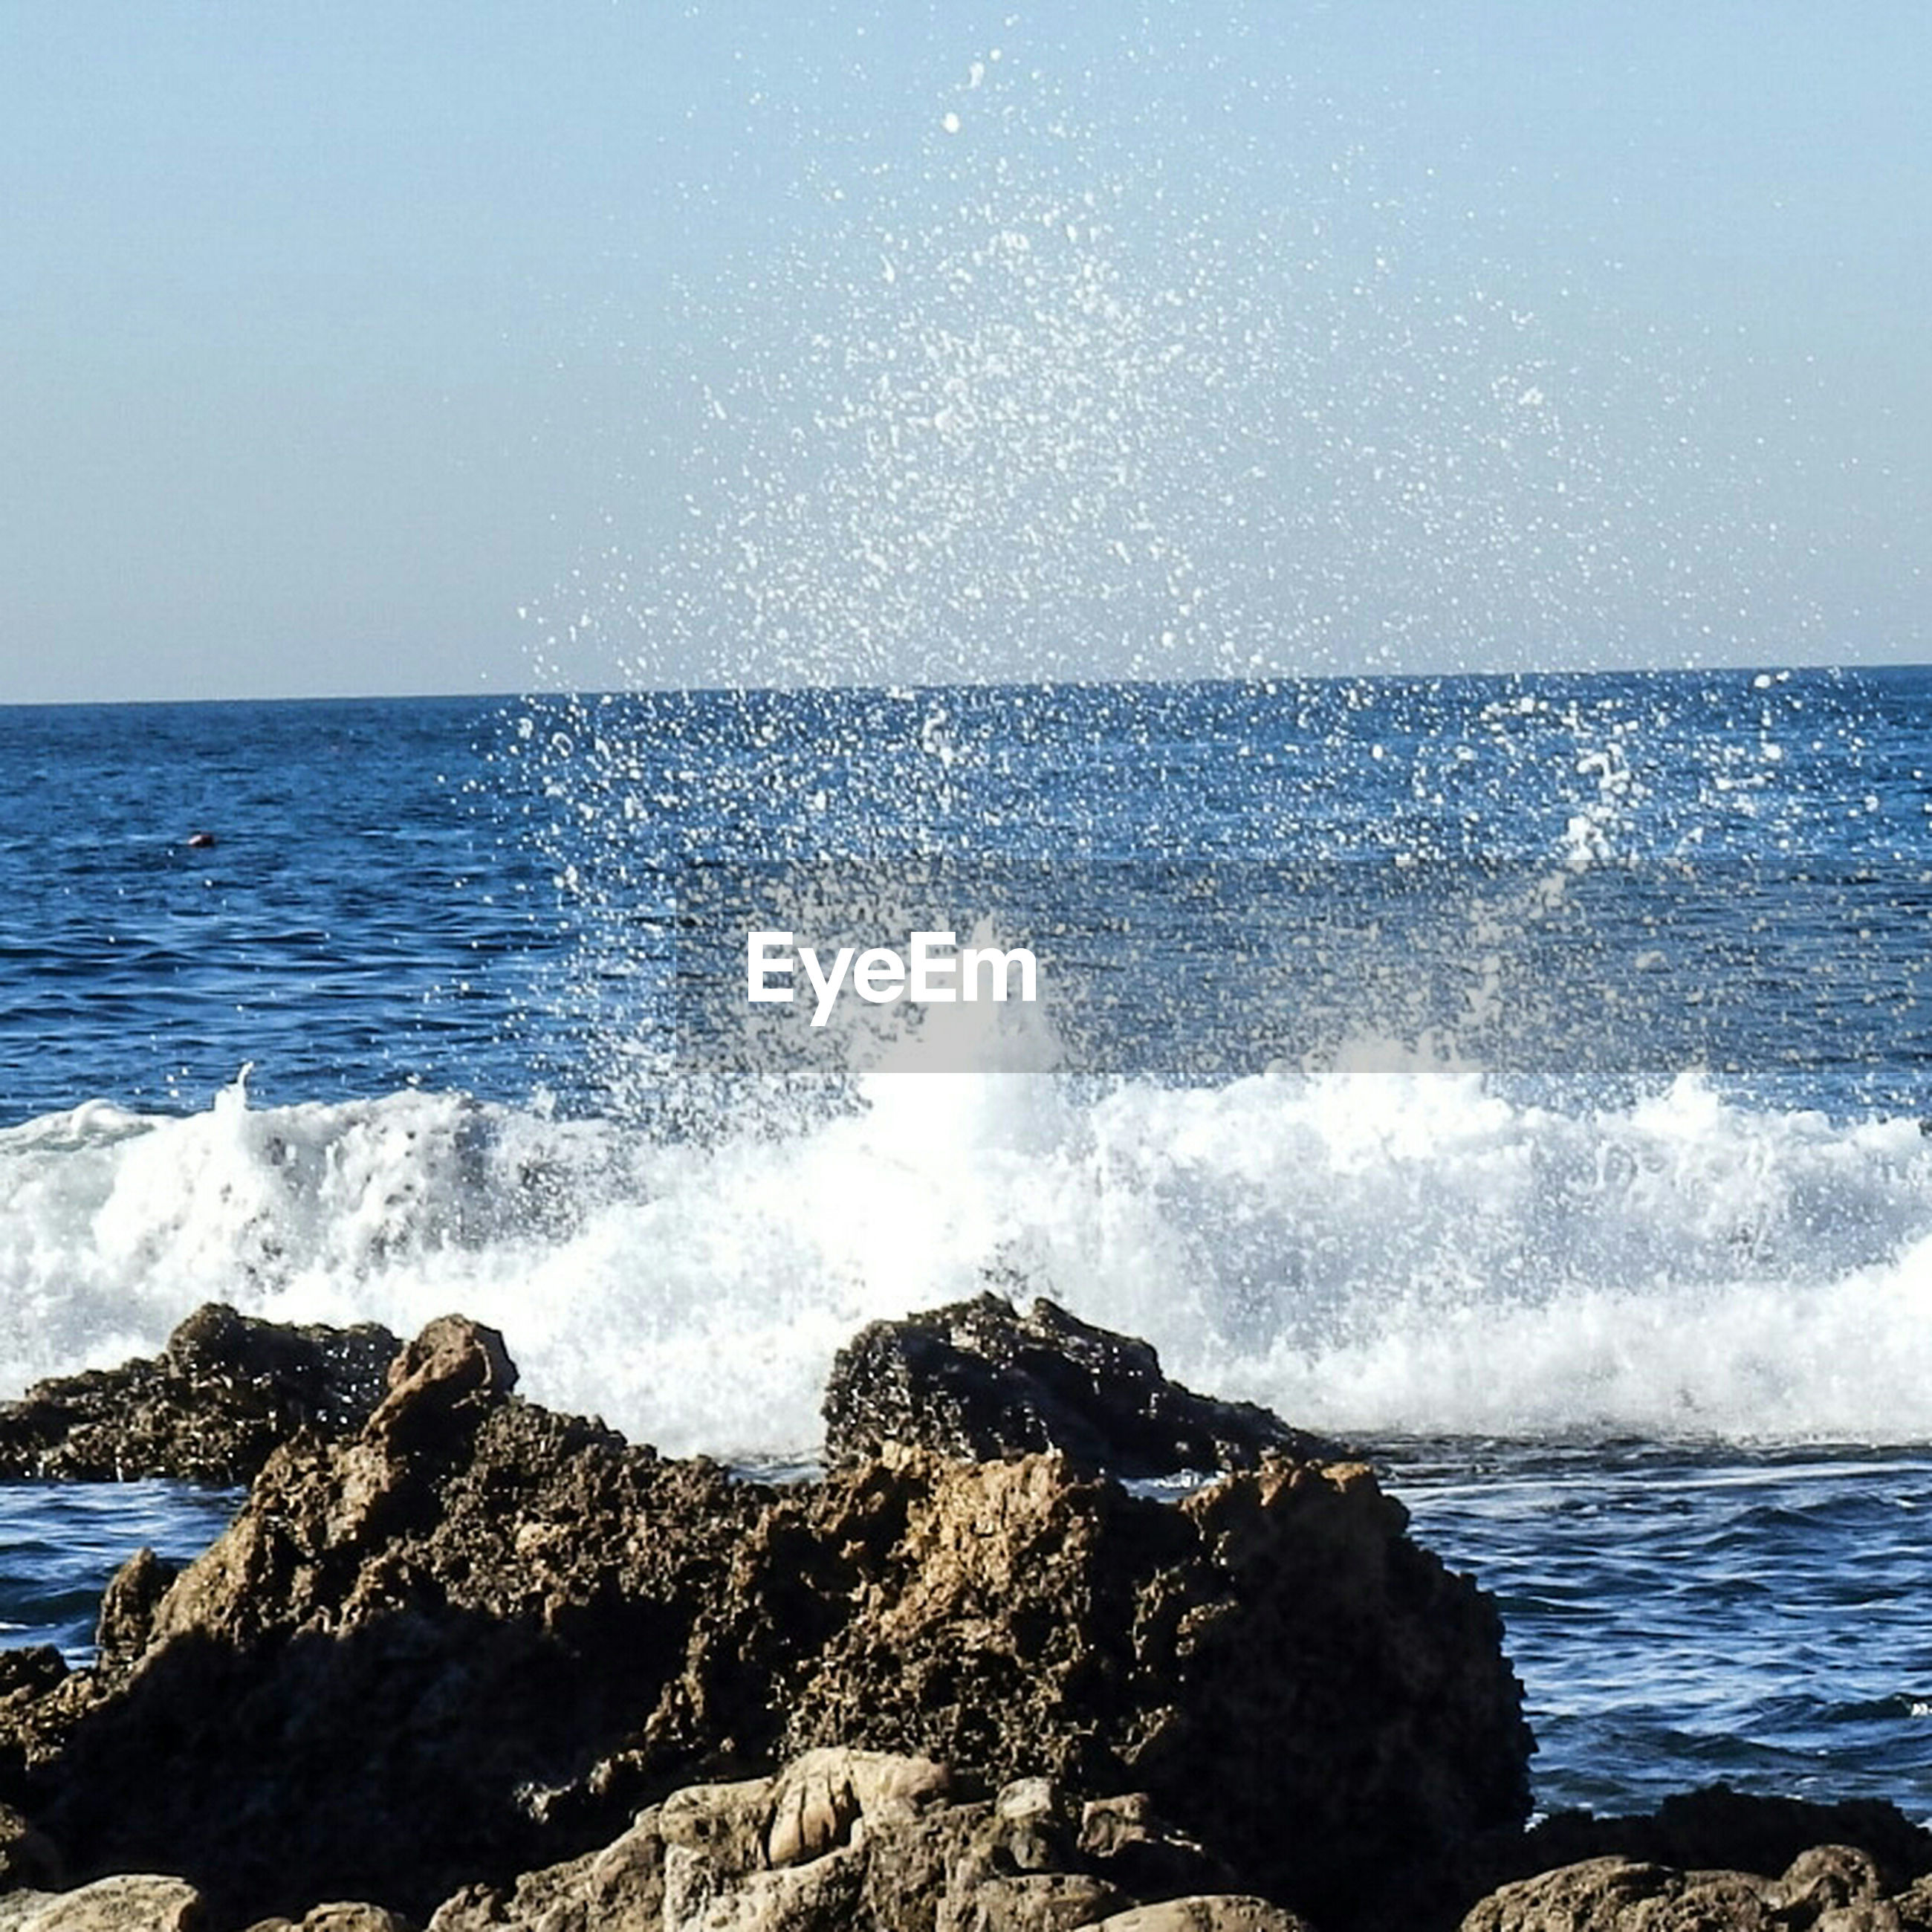 sea, horizon over water, water, beauty in nature, nature, wave, rock - object, scenics, motion, no people, outdoors, clear sky, rough, tranquil scene, sky, tranquility, breaking, day, beach, power in nature, crash, force, blue